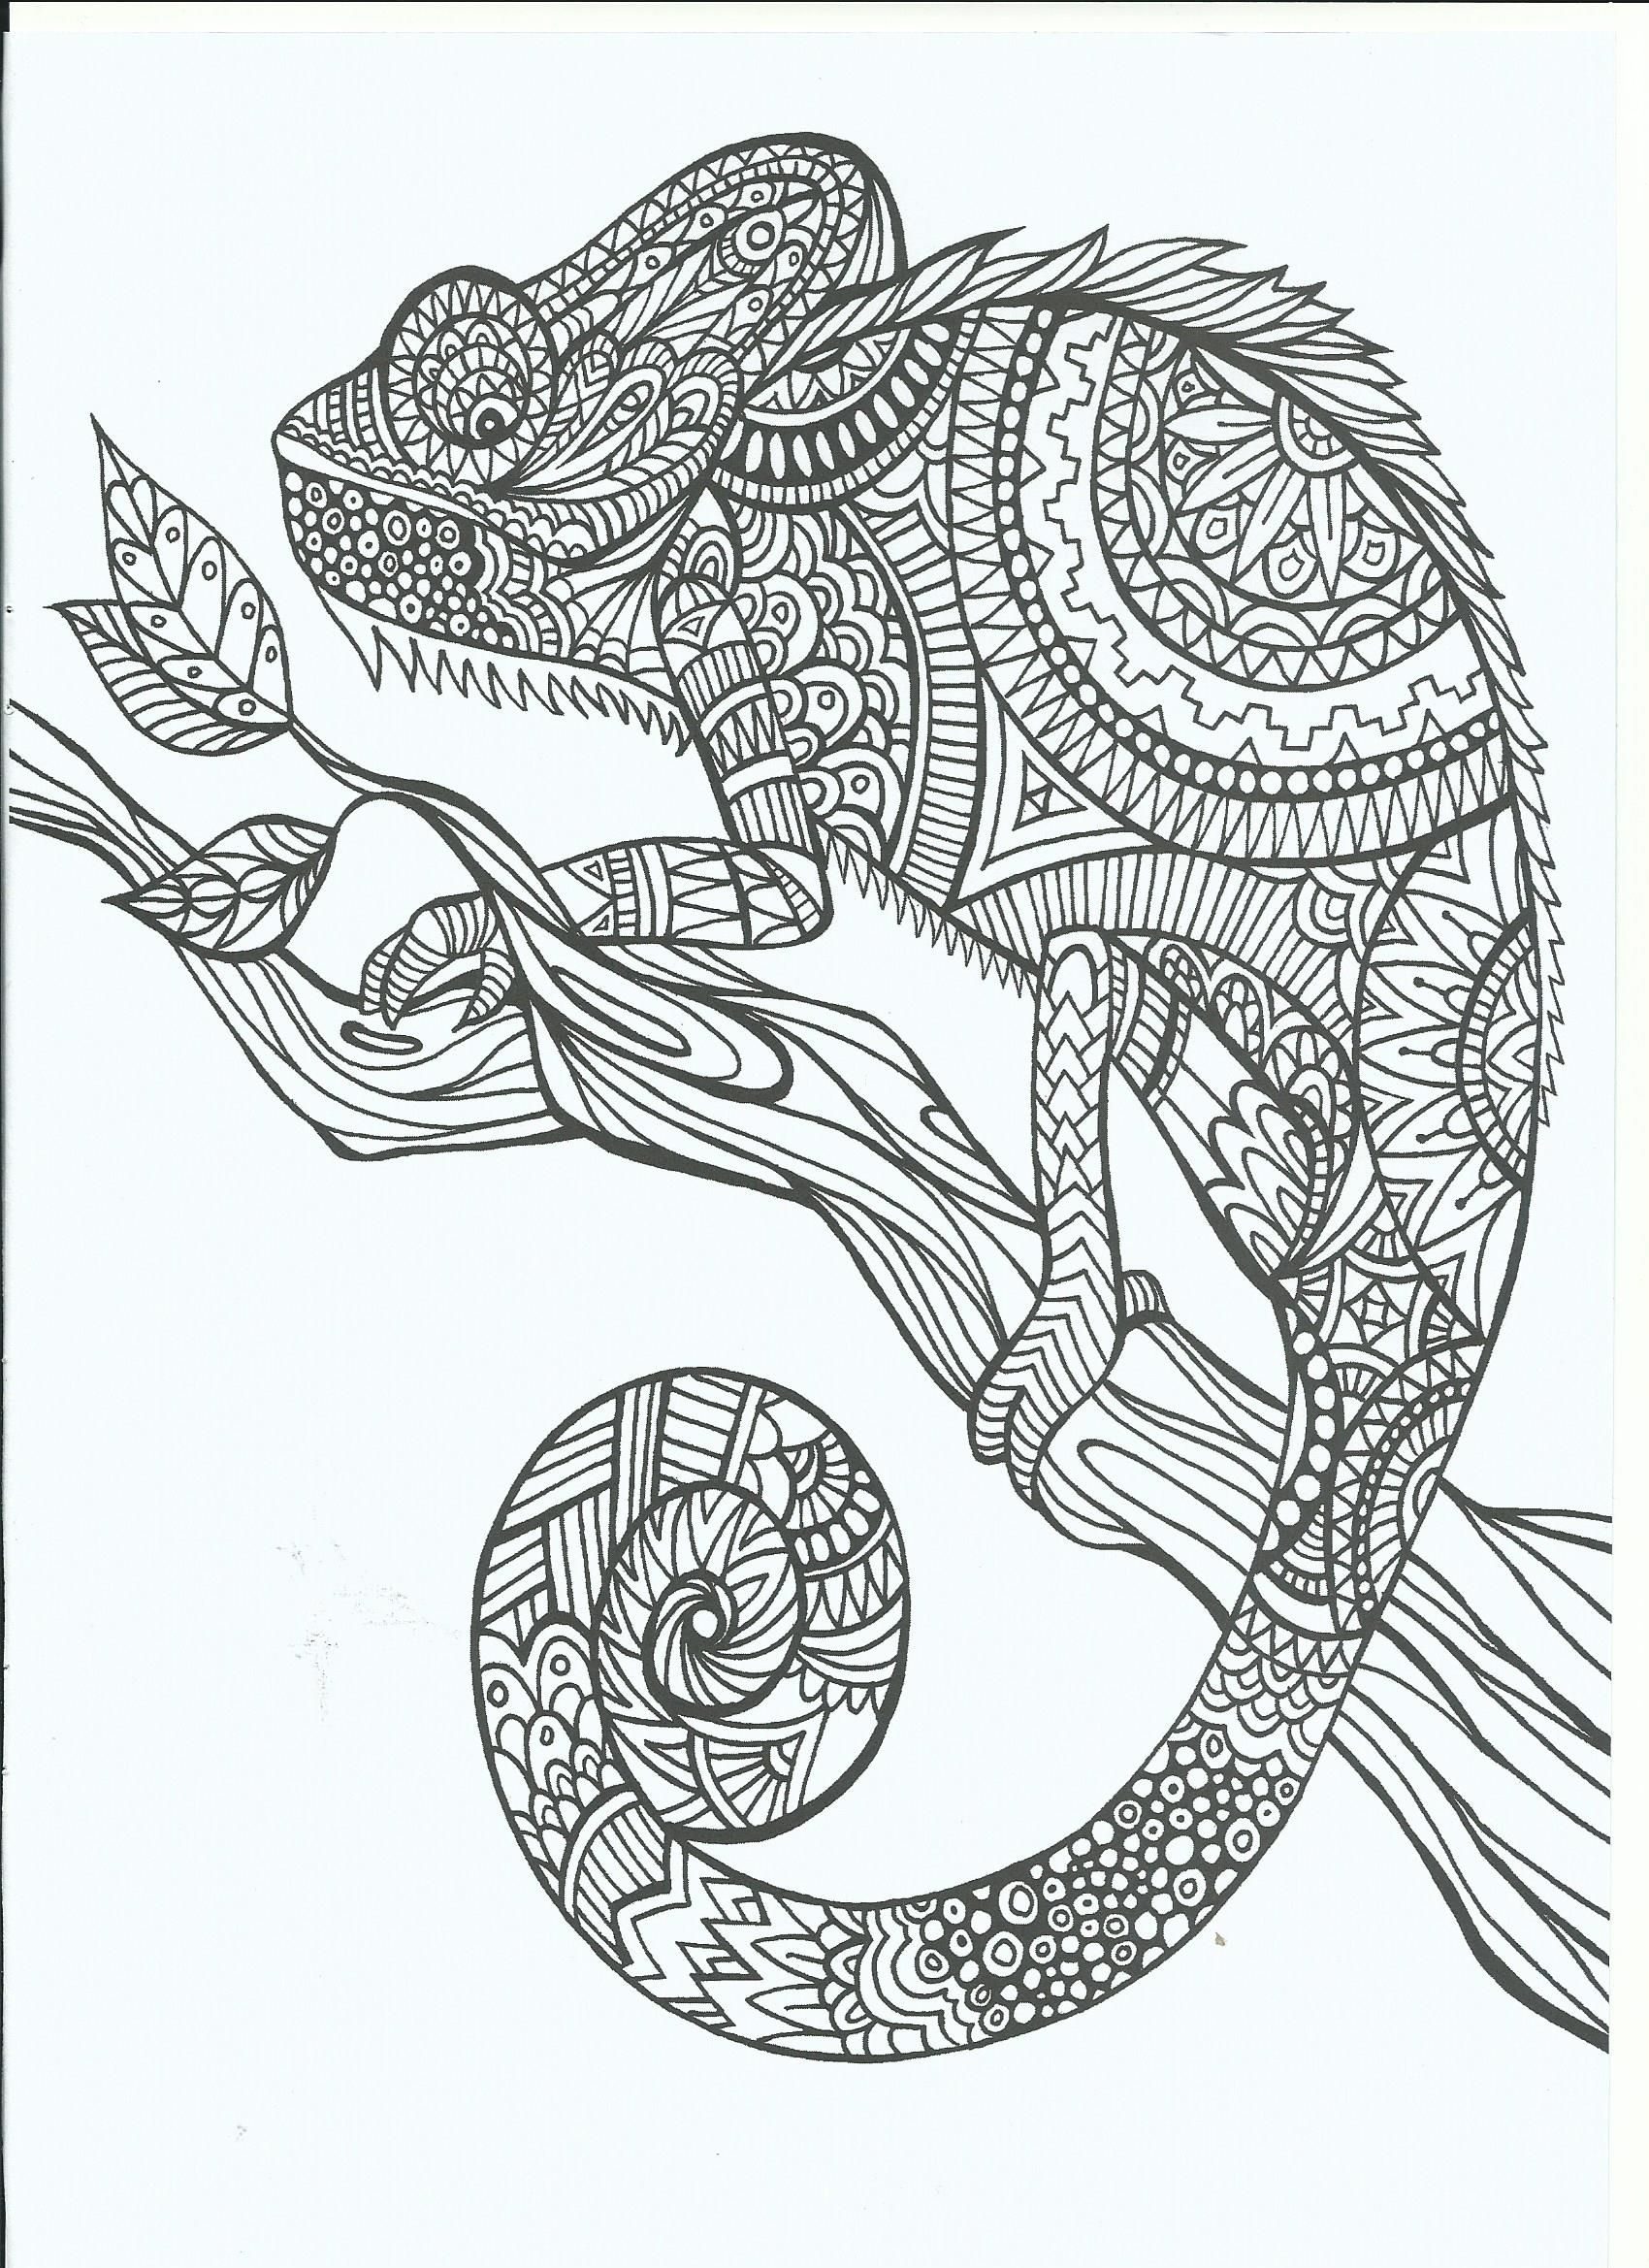 Ausmalbilder Tiere : Free Printable Coloring Pages For Adults 12 More Designs